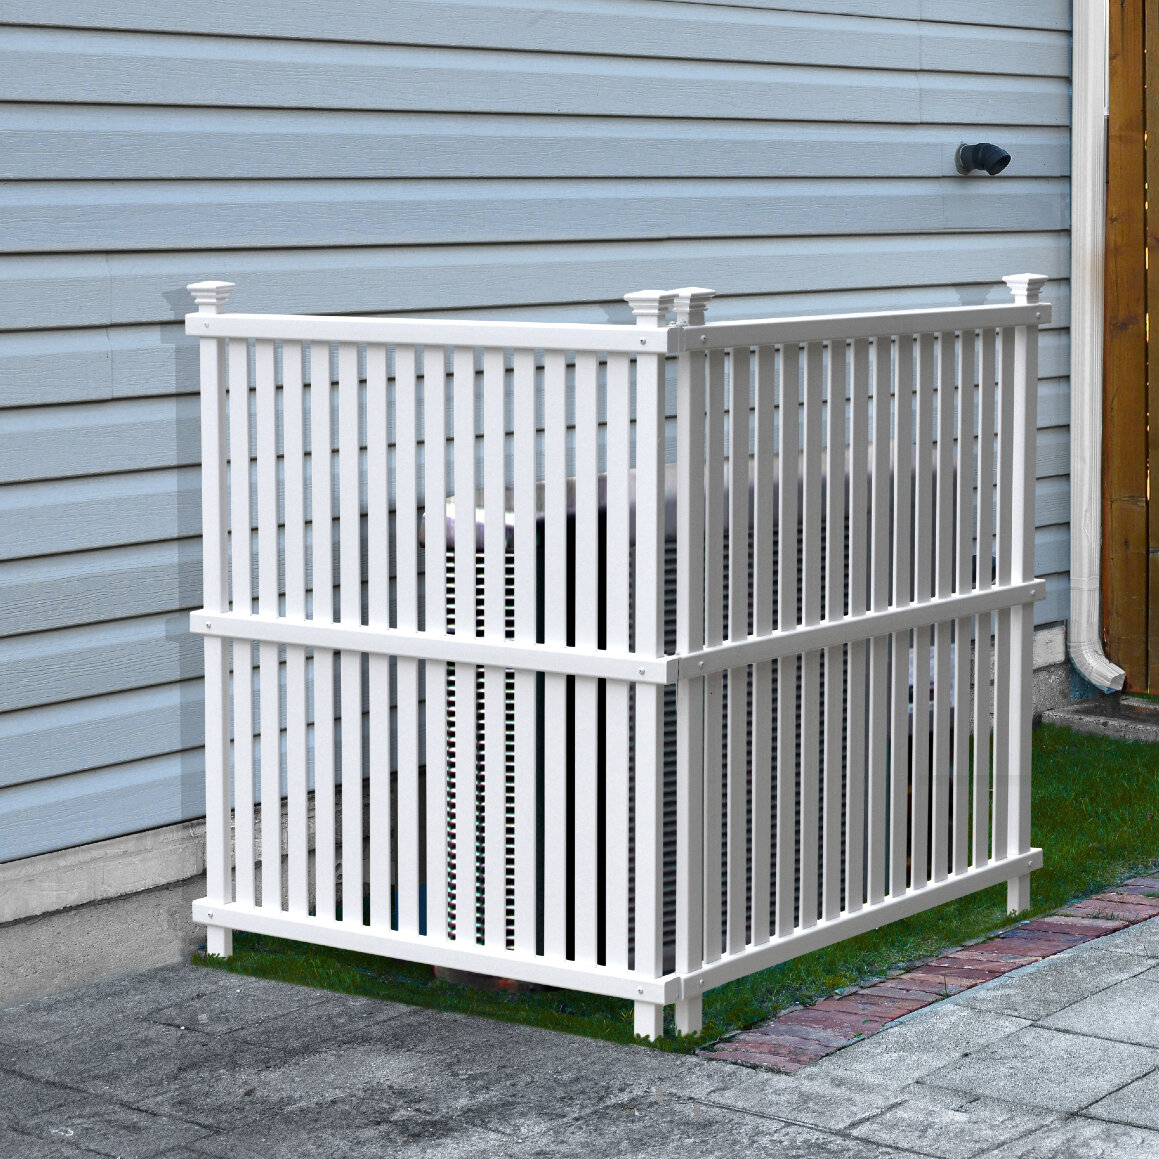 Zippity Outdoor Products 4 Ft H X 6 Ft W Wilmington Fence Panel Reviews Wayfair